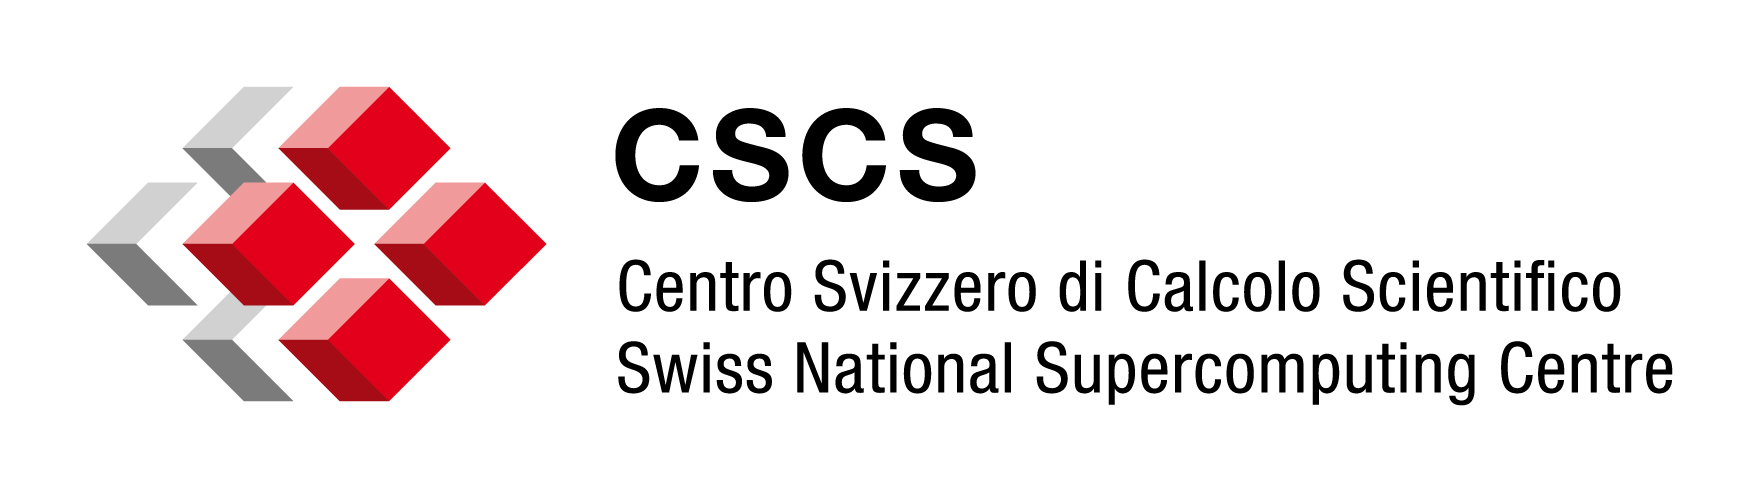 CSCS Webinar on Proposal Submission